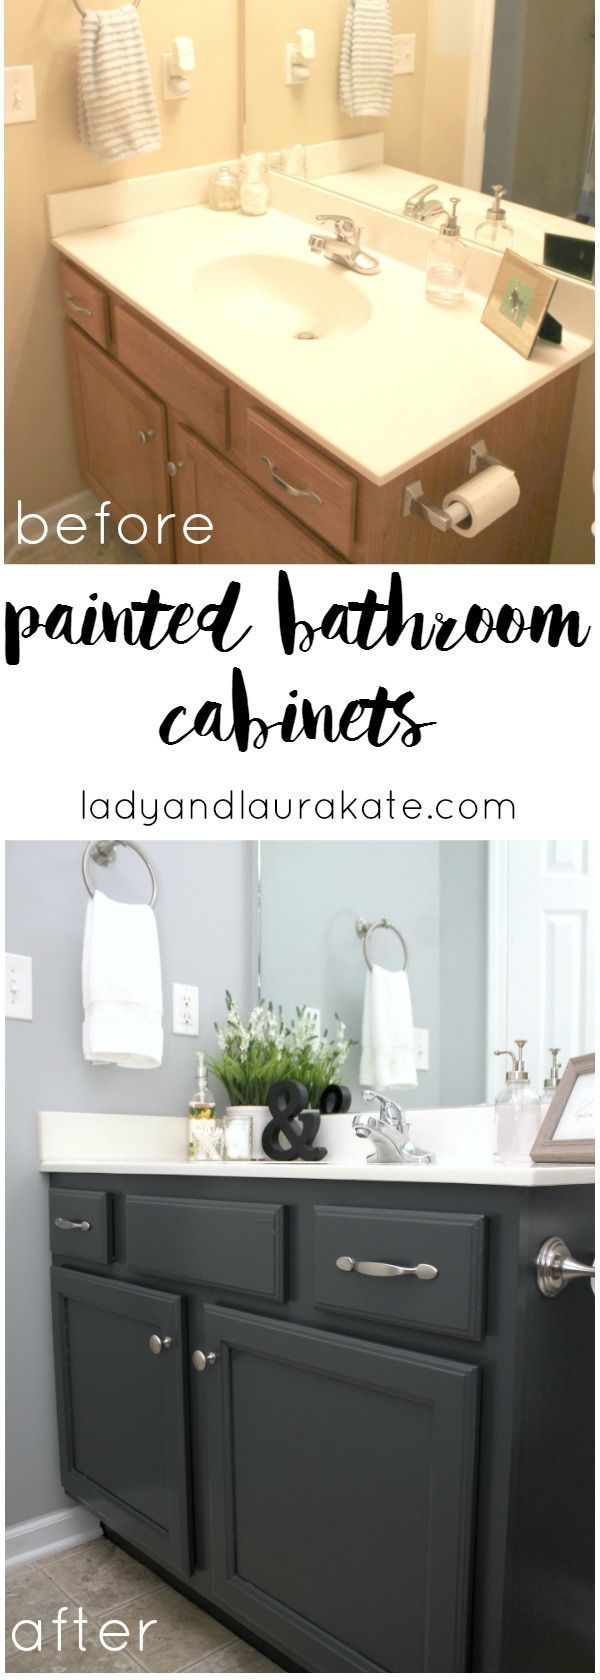 Best Paint Bathroom Cabinets Ideas On Pinterest Painted